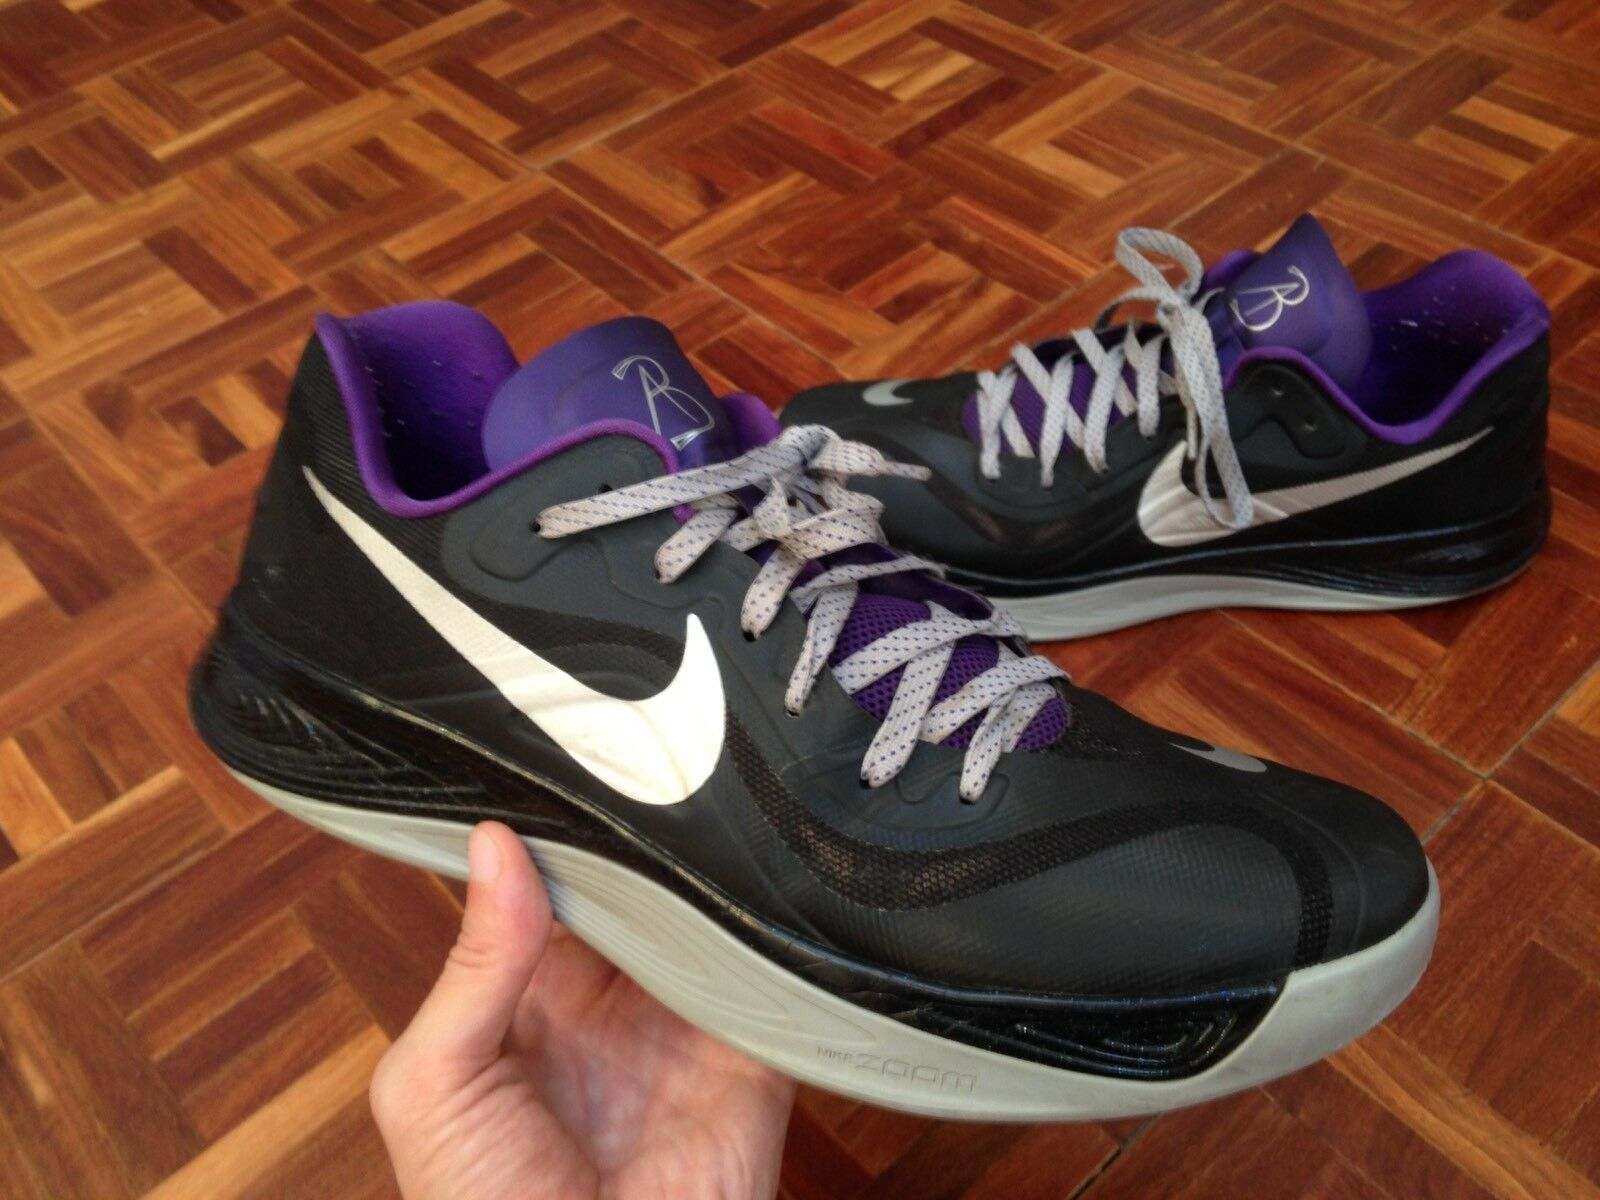 Nike Hyperfuse Low PE NBA PLAYER ISSUED AARON BROOKS Sac Kings Shoes Sample